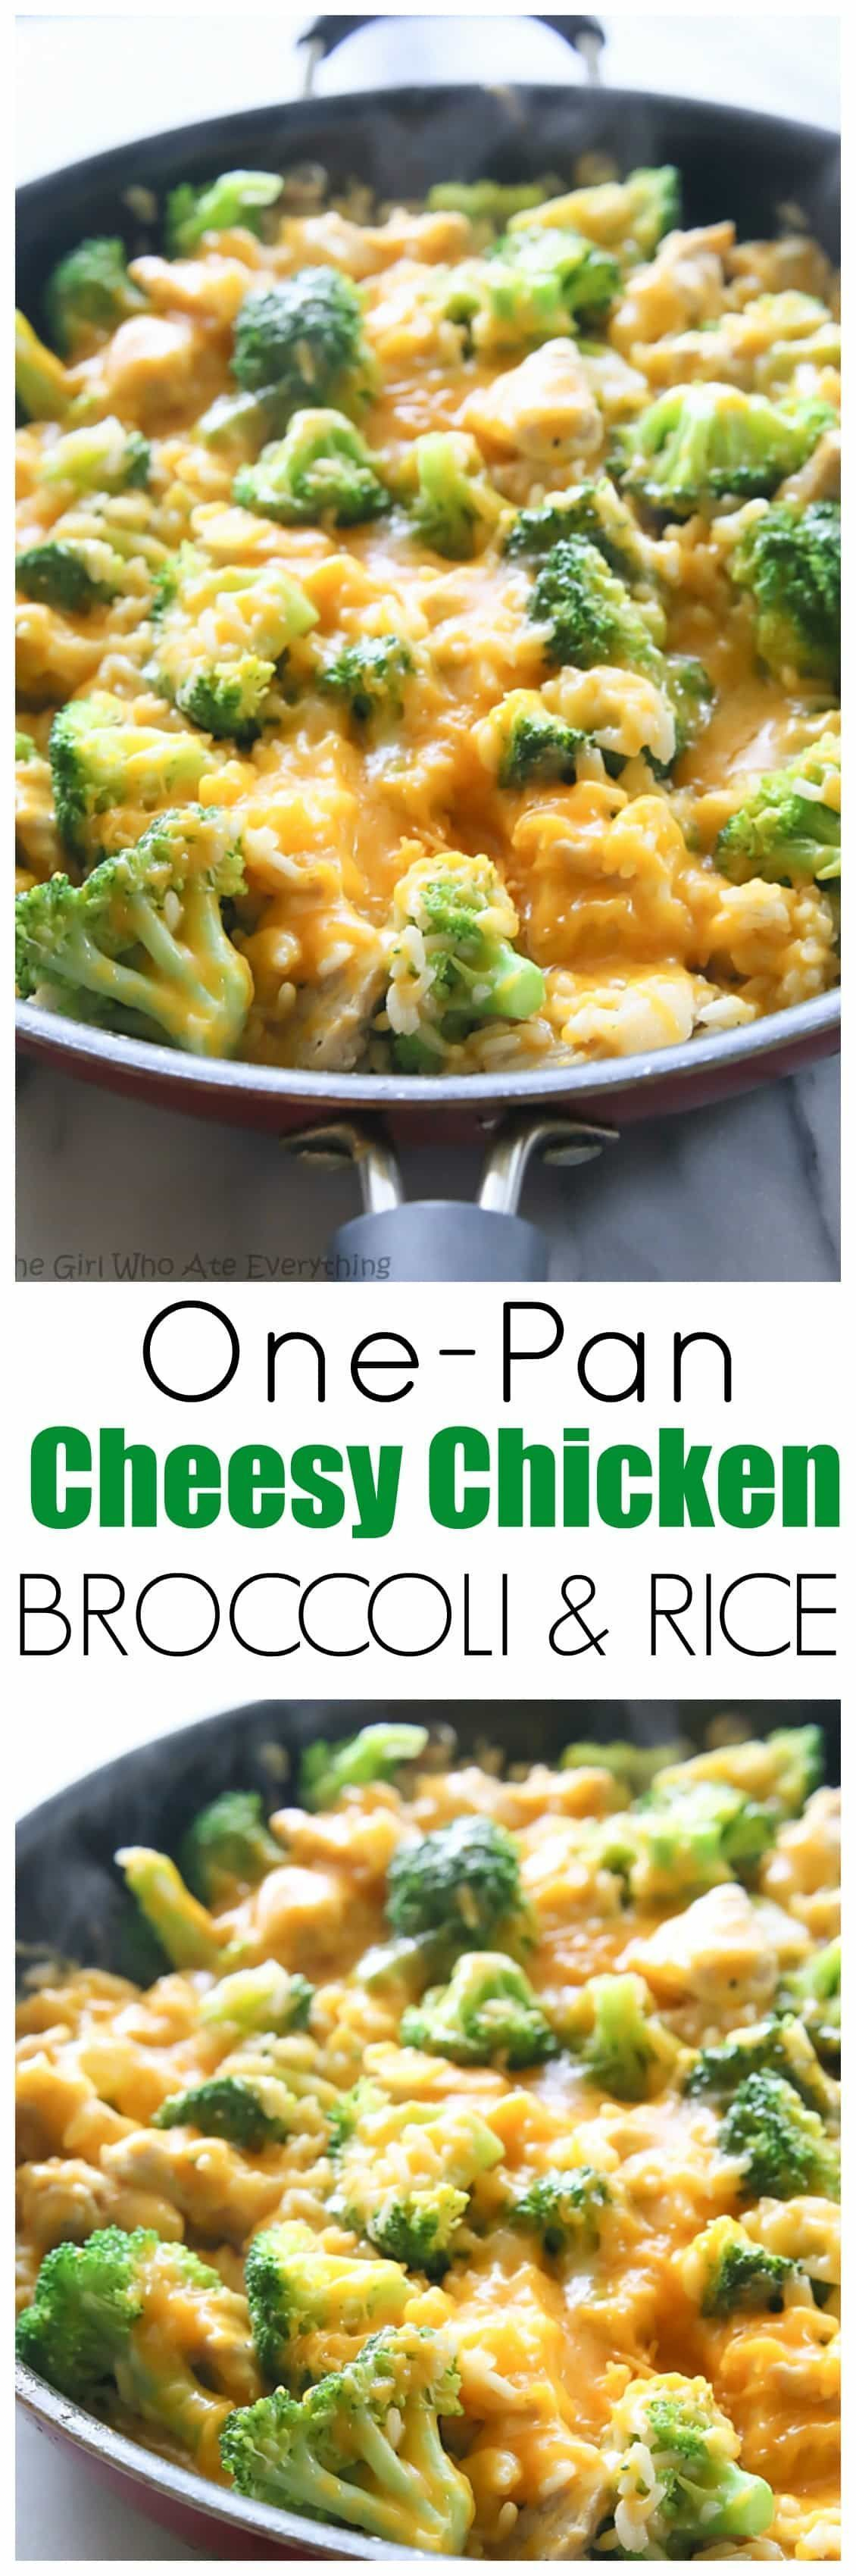 Broccoli, and Rice One-Pan Cheesy Broccoli and Rice Skillet - my go-to for an easy dinner. the-girl-who-ate-One-Pan Cheesy Broccoli and Rice Skillet - my go-to for an easy dinner. the-girl-who-ate-Chicken, Broccoli, and Rice One-Pan Cheesy Broccoli and Rice Skillet - my go-to for an easy dinner. the-girl-who-ate-One-Pan Ch...